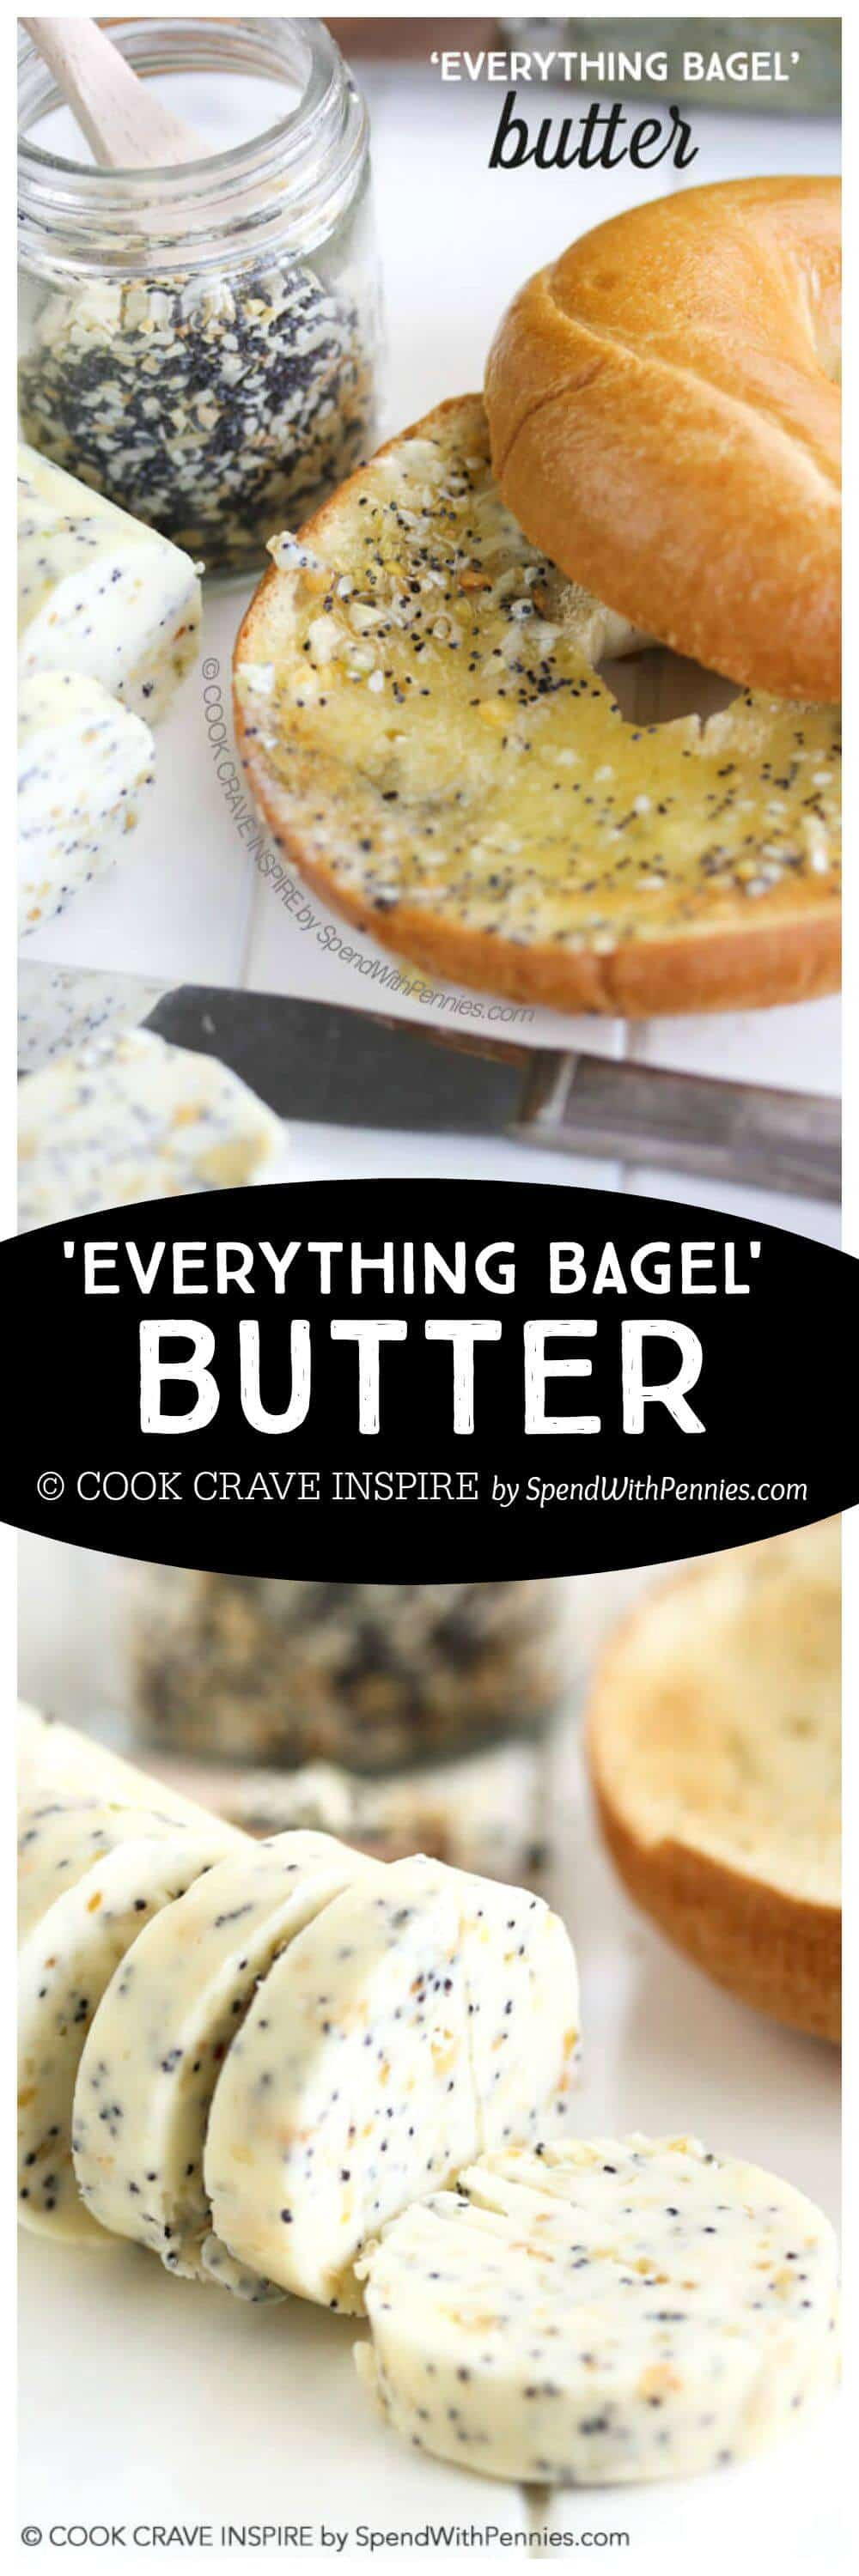 butter and seasoning on a bagel with a title